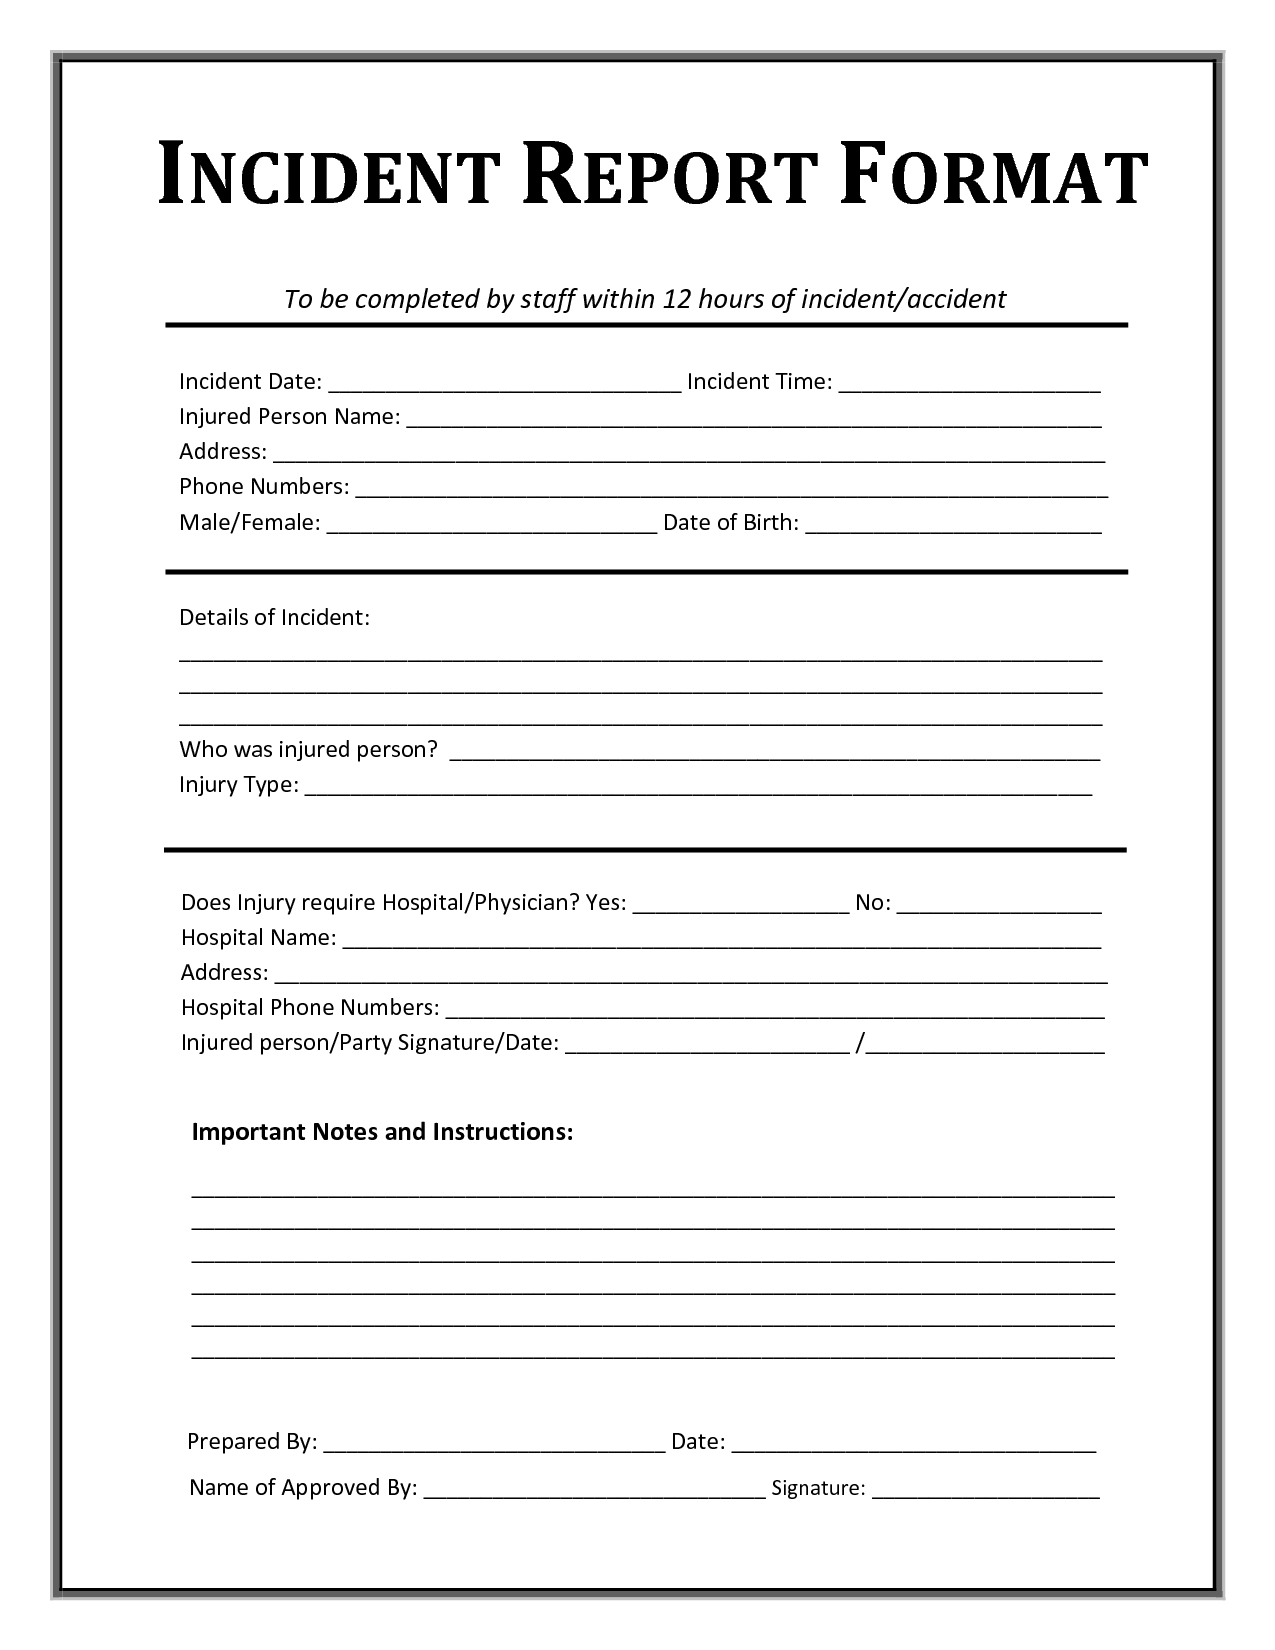 Incident Report Templates Captivating Incident Report Form Template  After School Sign In  Pinterest .